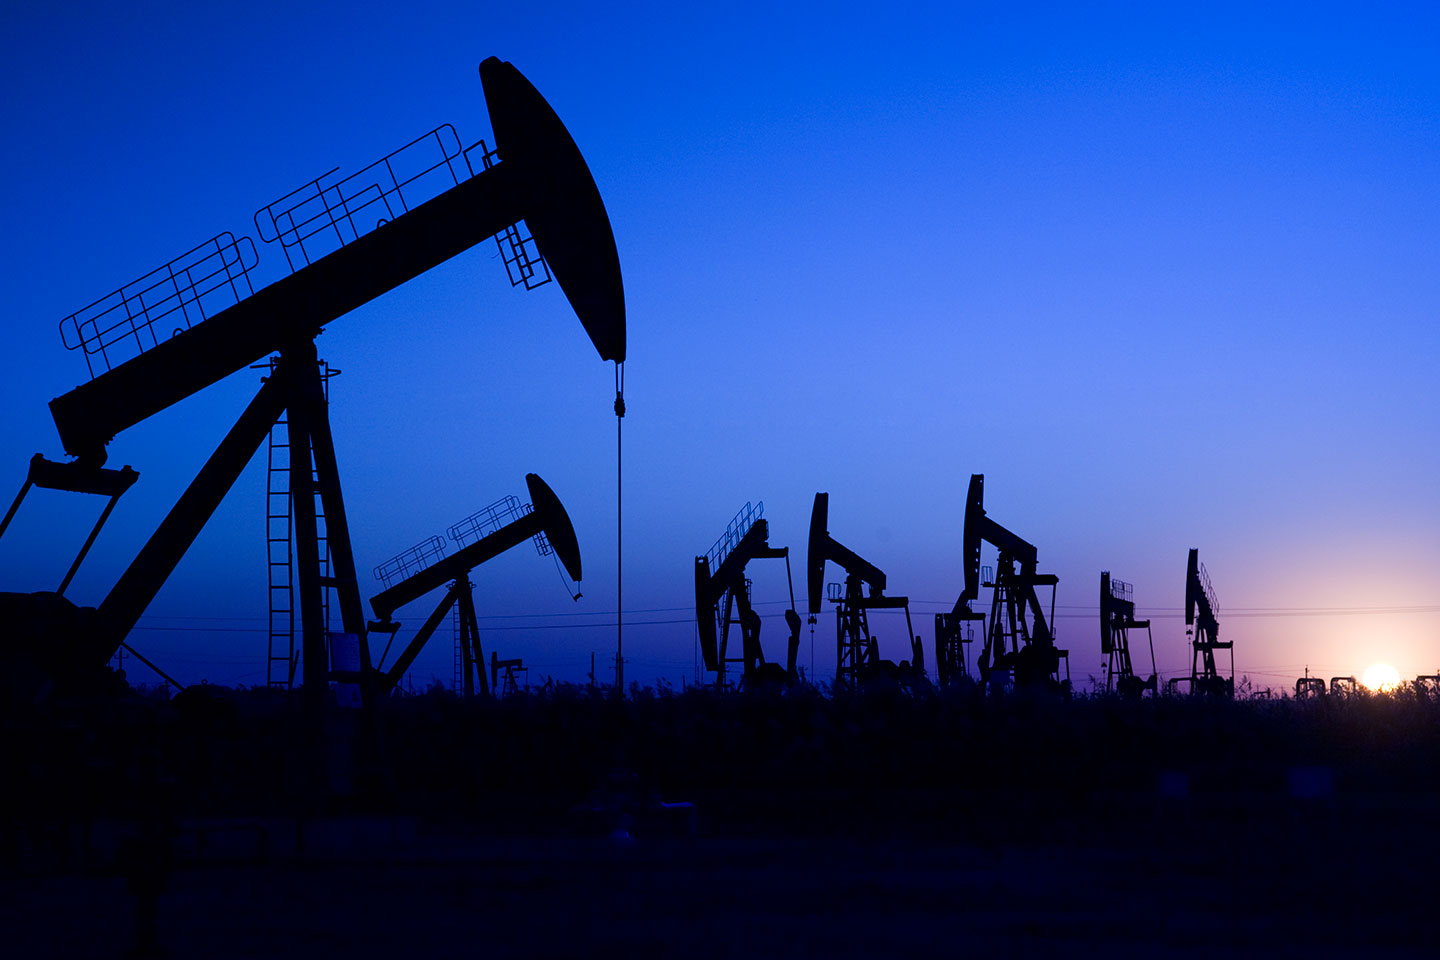 Crude oil prices are moving down because of the excessive production